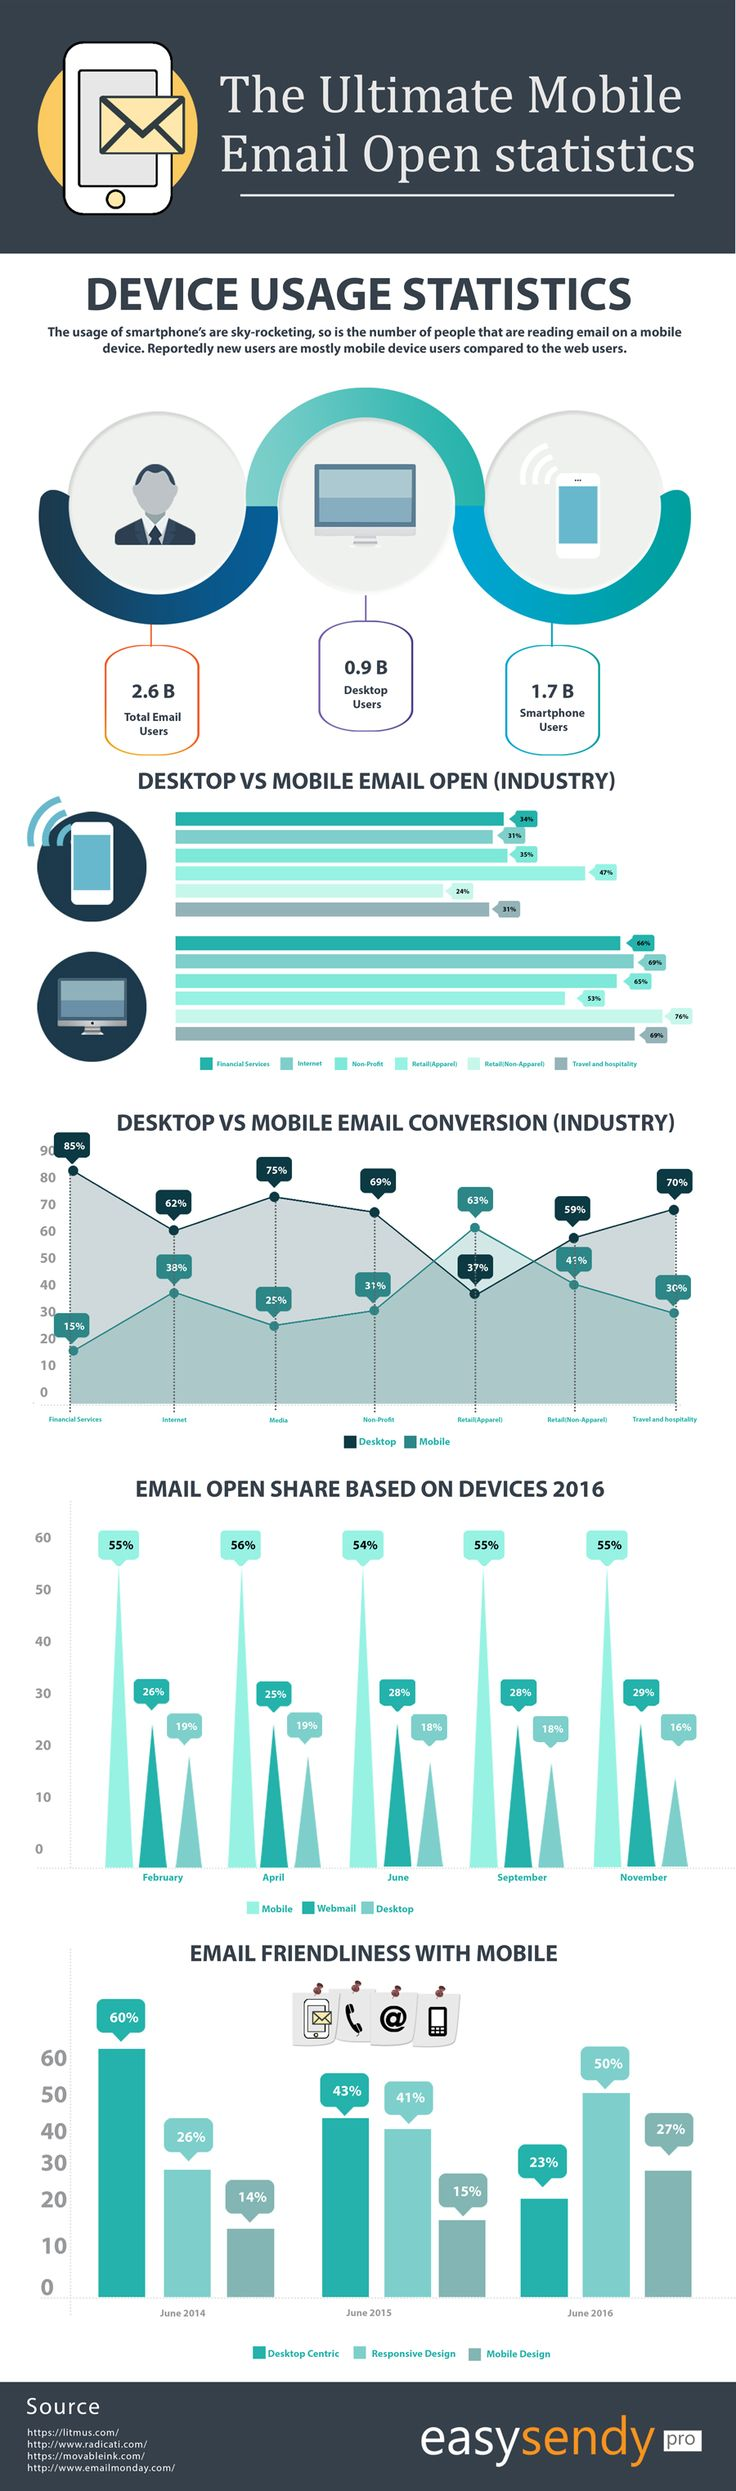 [Infographic] The Ultimate Mobile Email Open Statistics